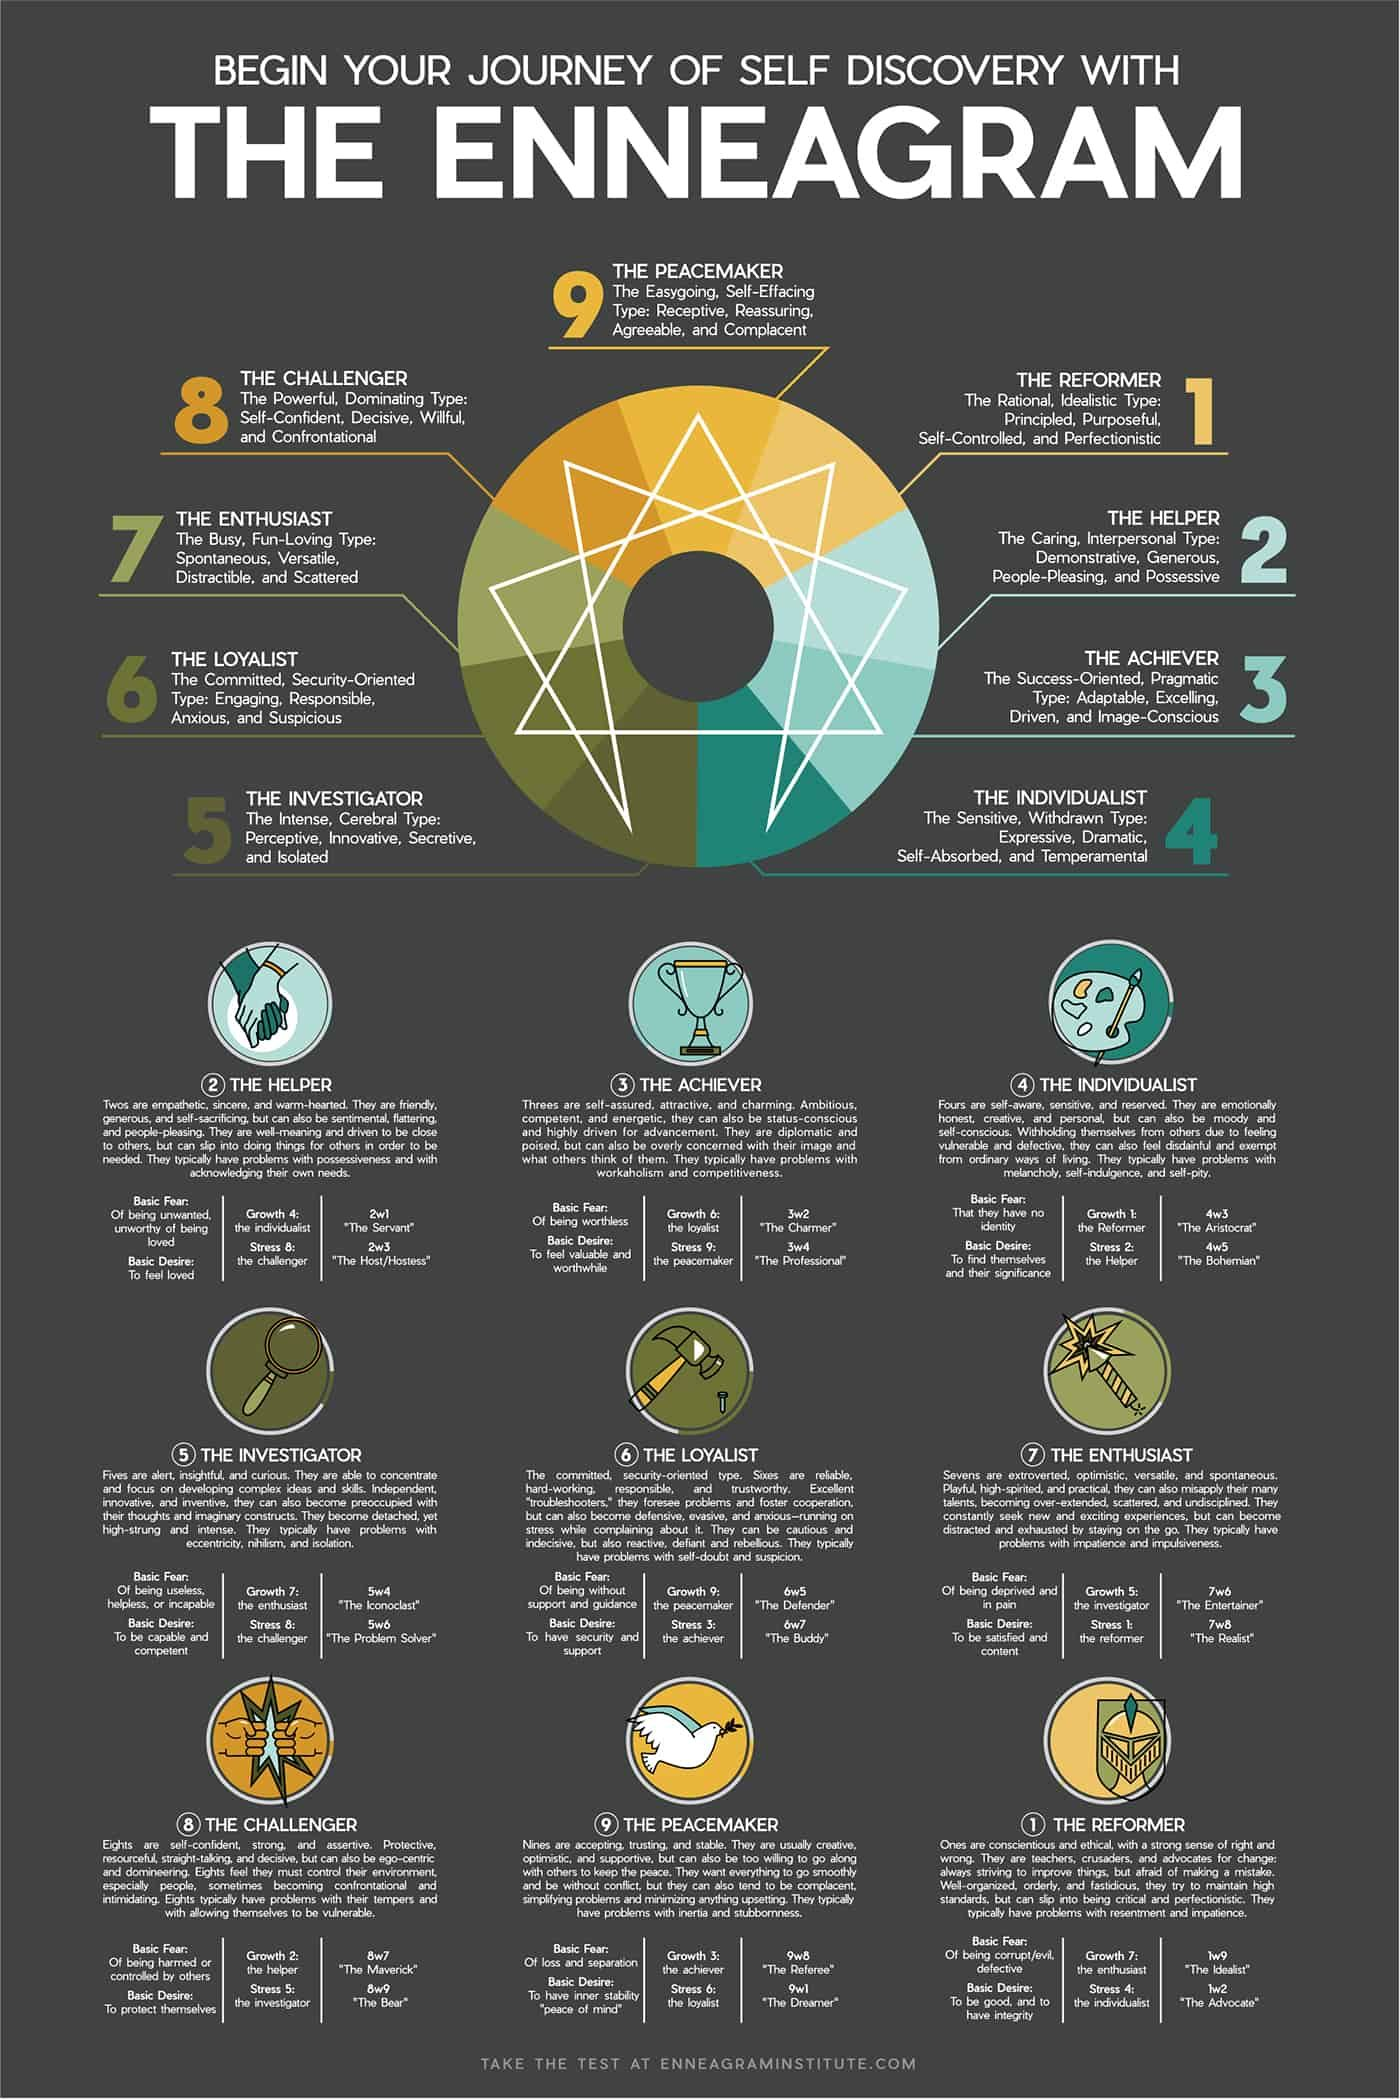 What's Your Personality Type? | Daily Infographic